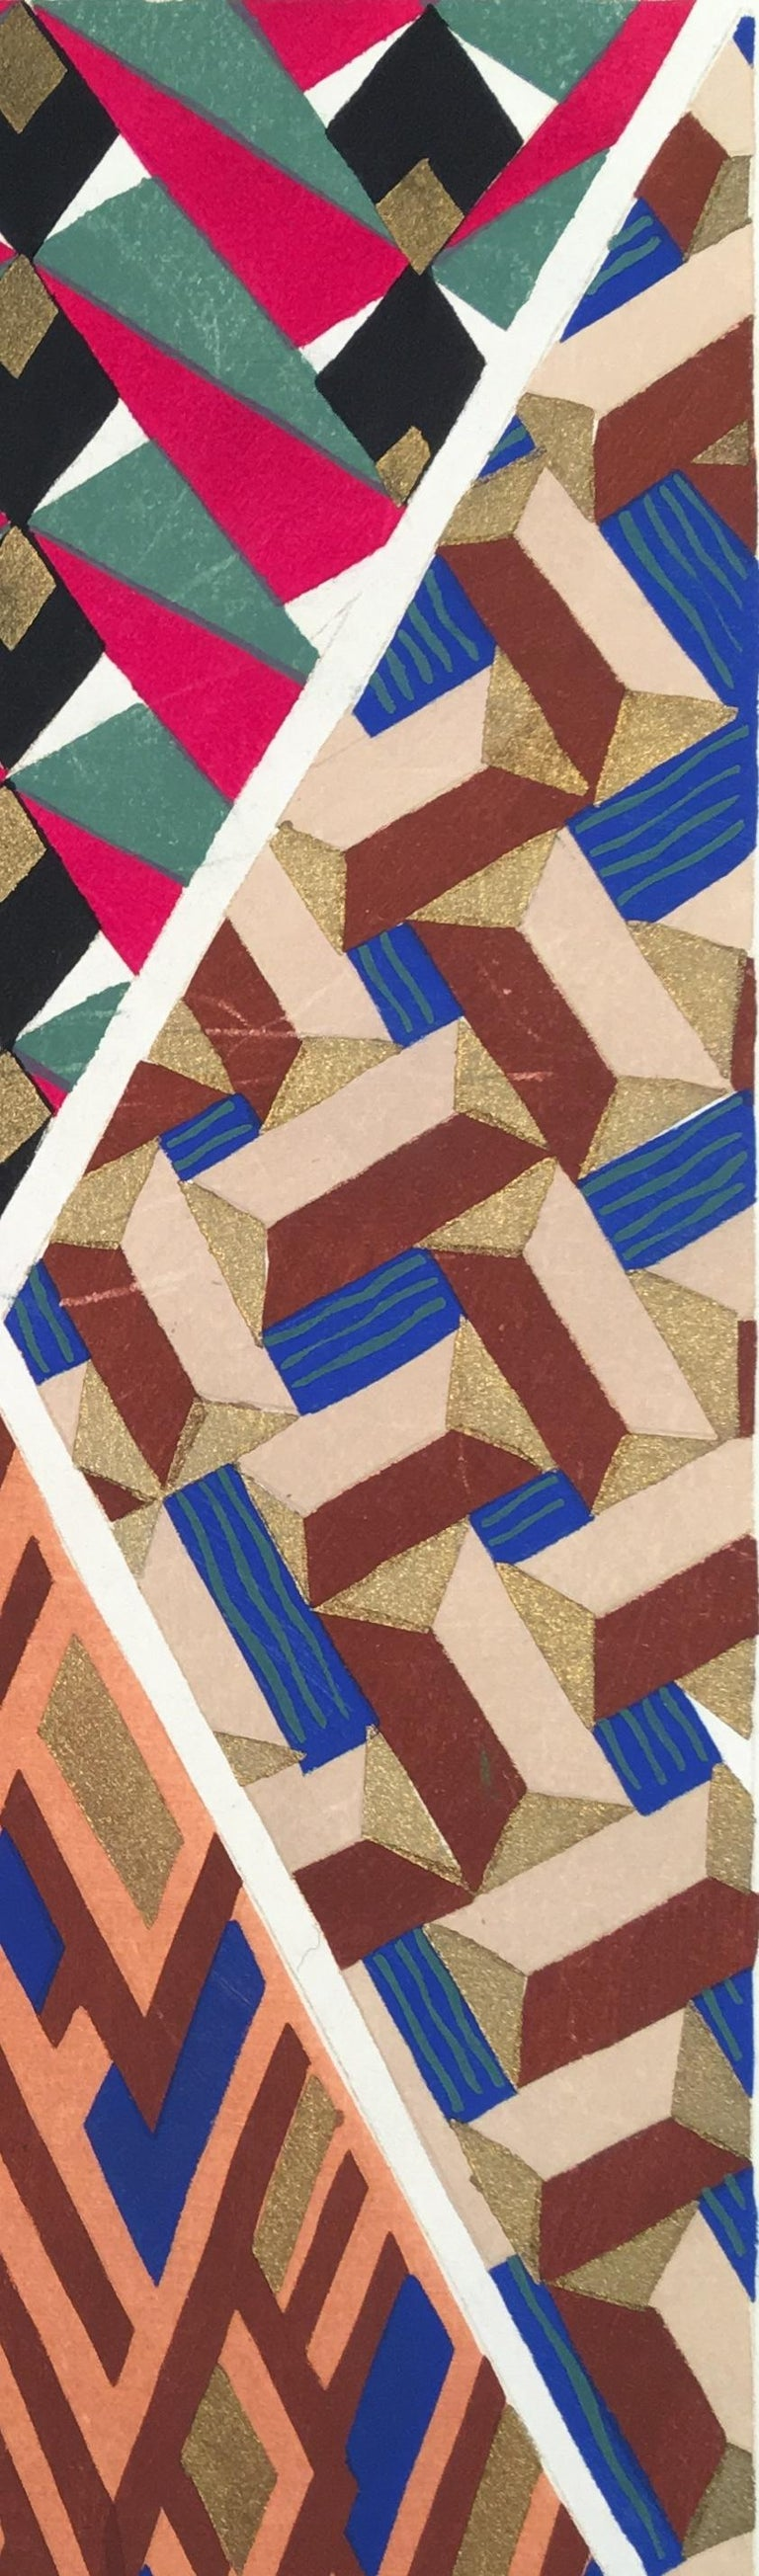 Inspirations Plate17 - Brown Abstract Print by Adrien-Jacques Garcelon